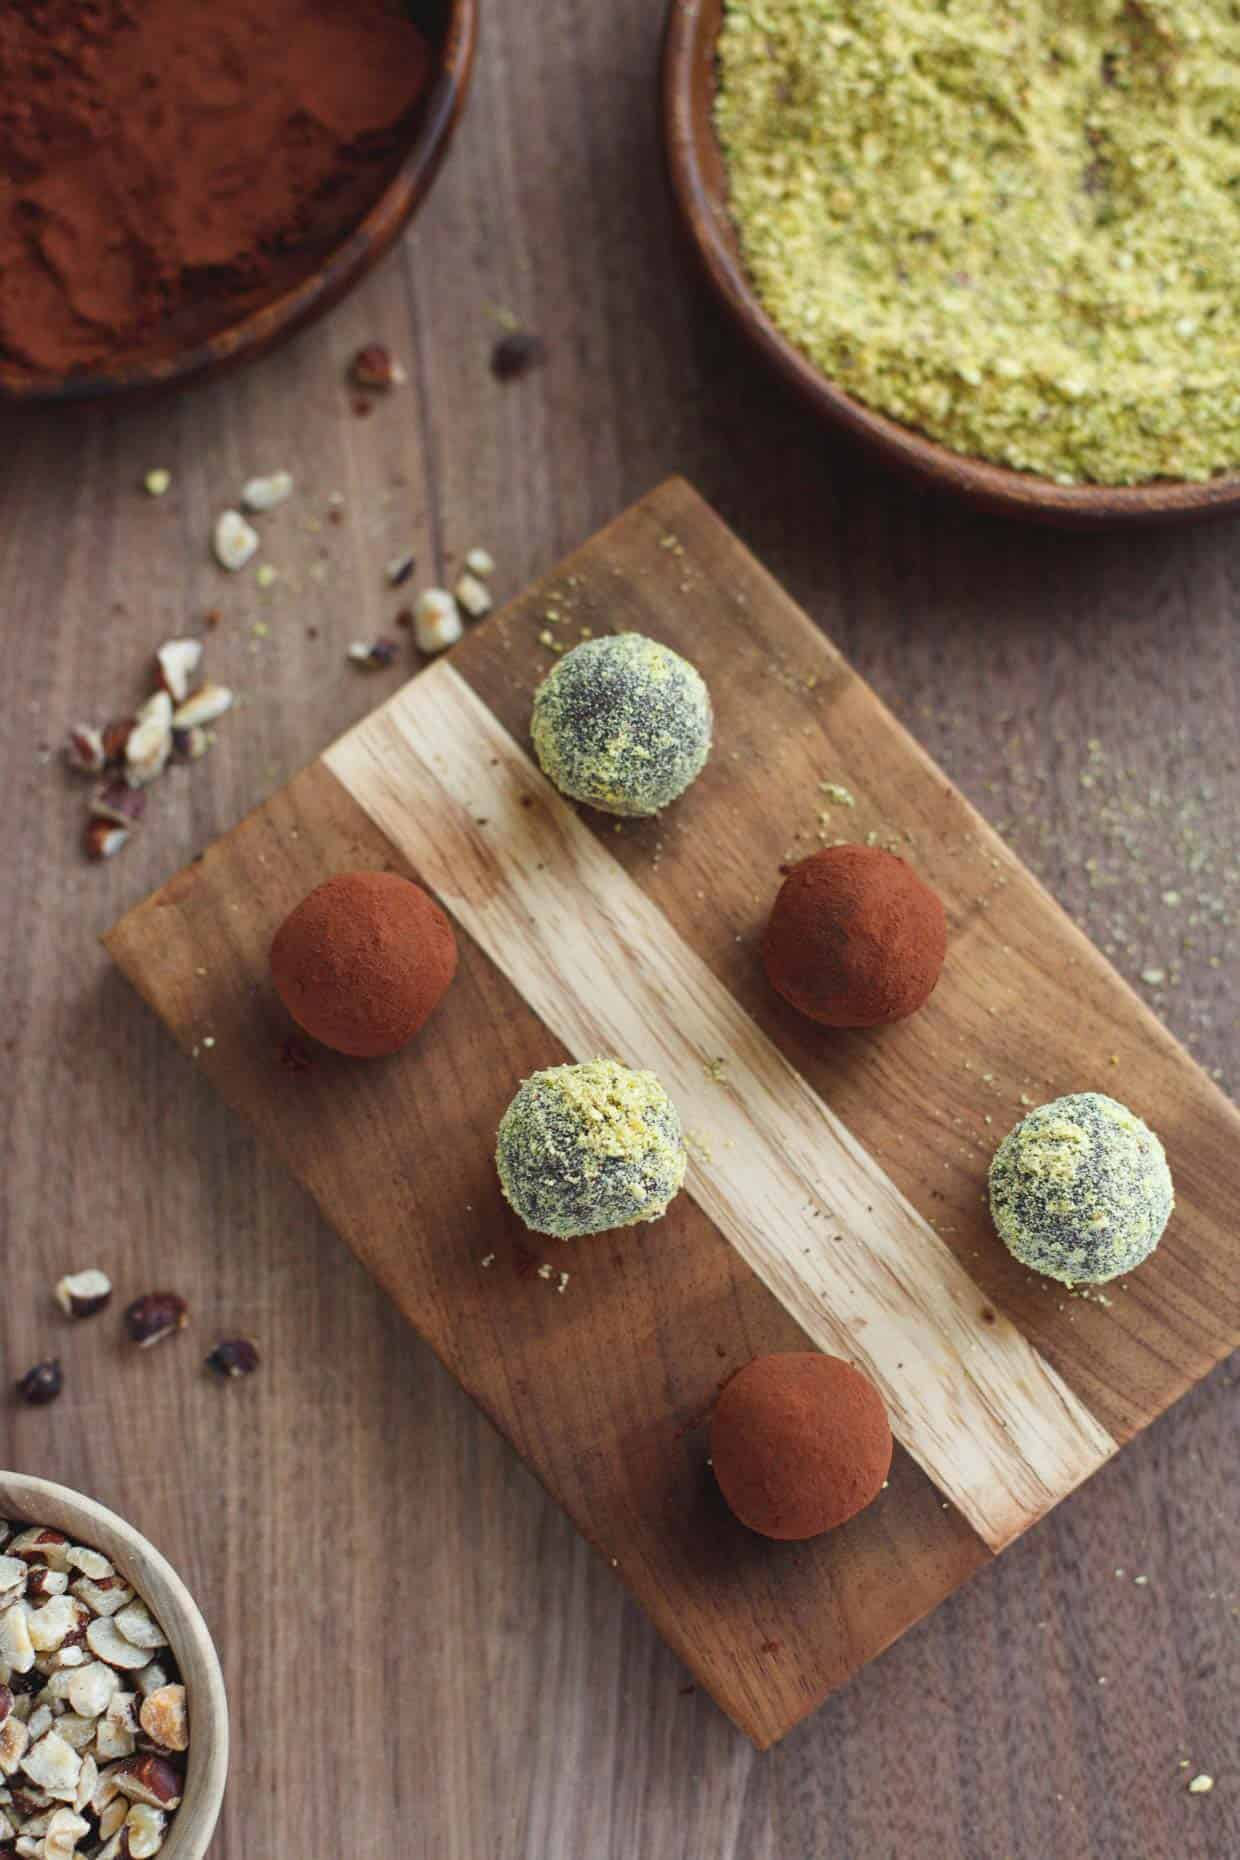 Healthy Nutella and Pistachio Truffles